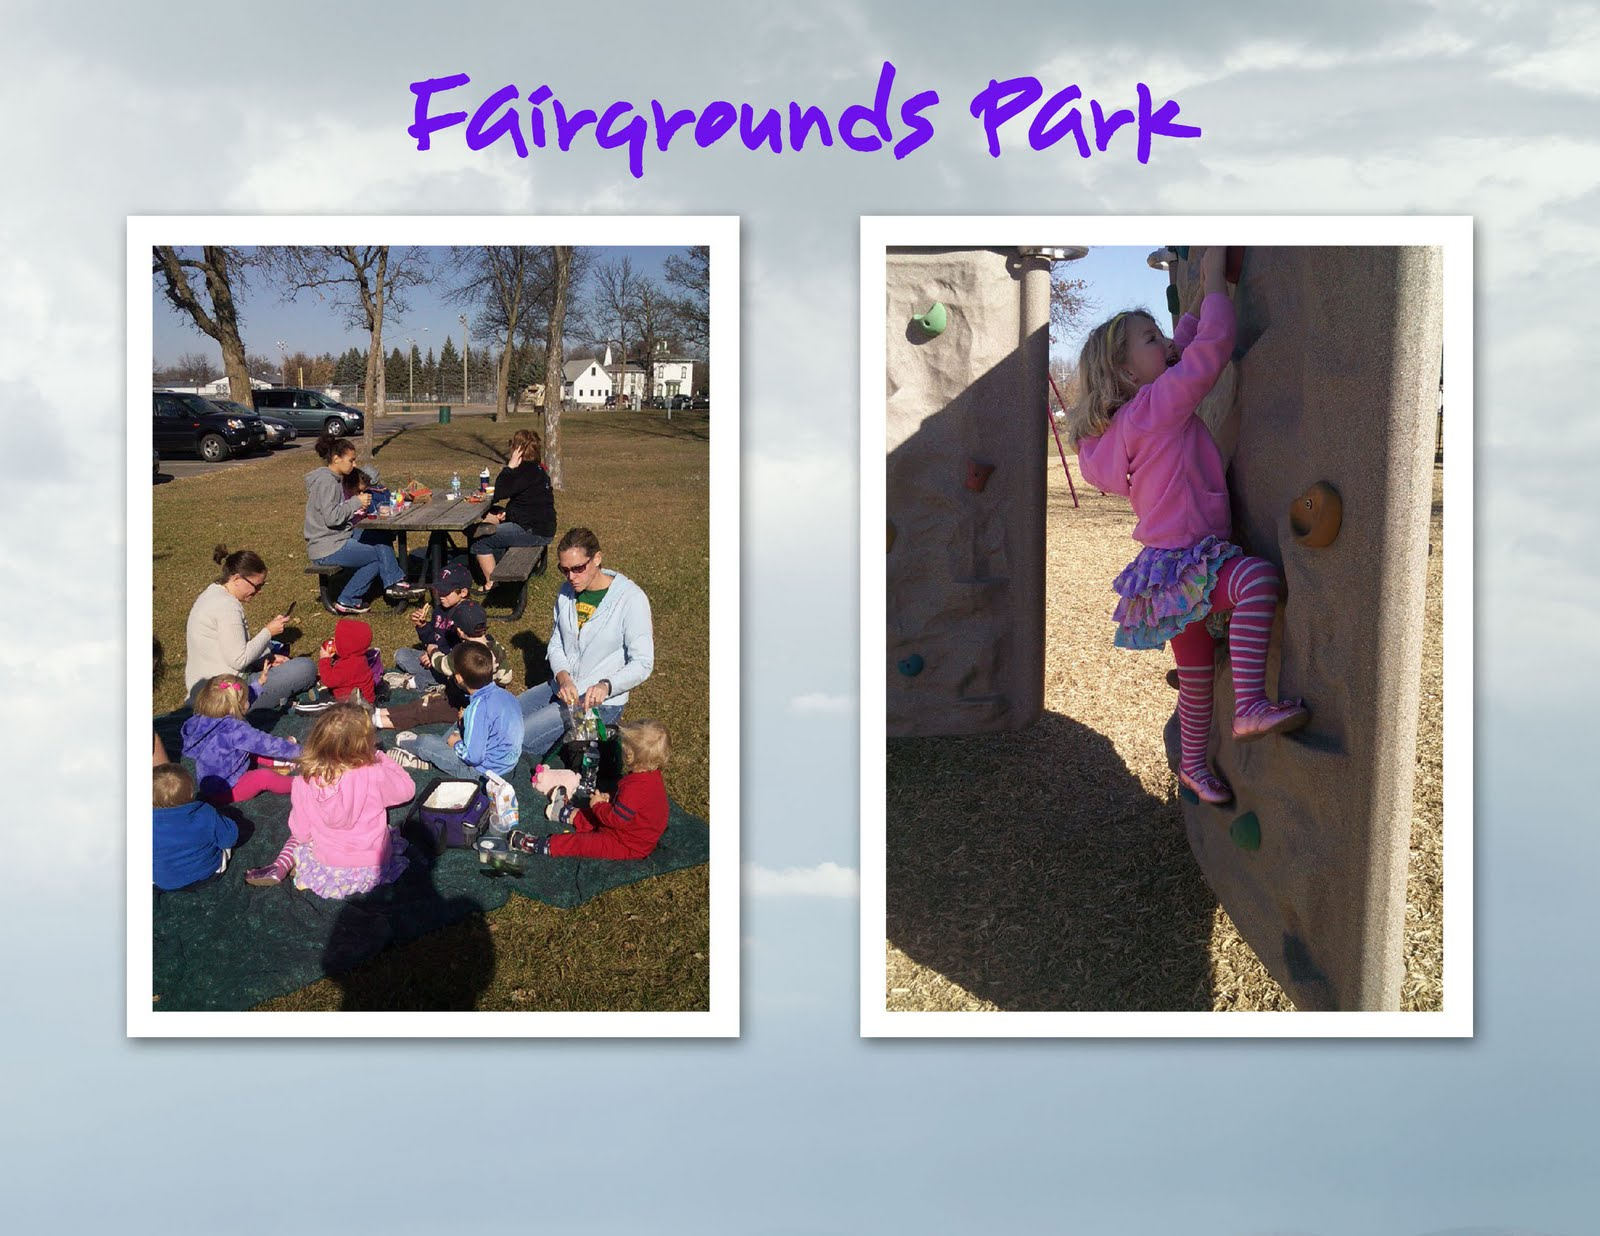 fairgrounds park